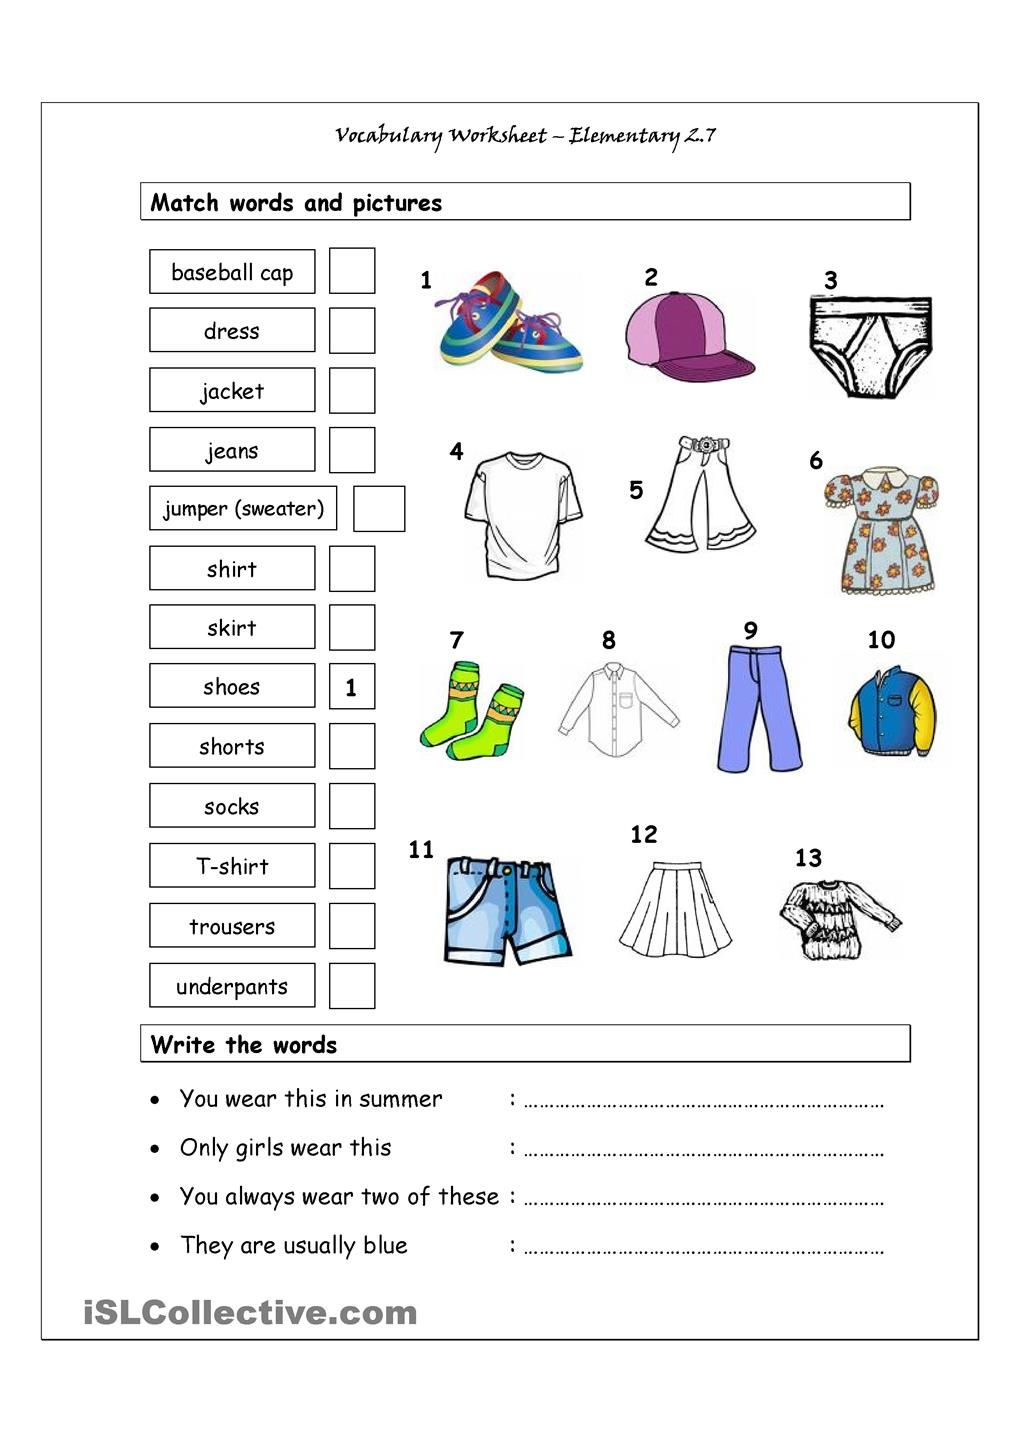 Vocabulary Matching Worksheet - Elementary 2.7 (CLOTHES) | ESL ...